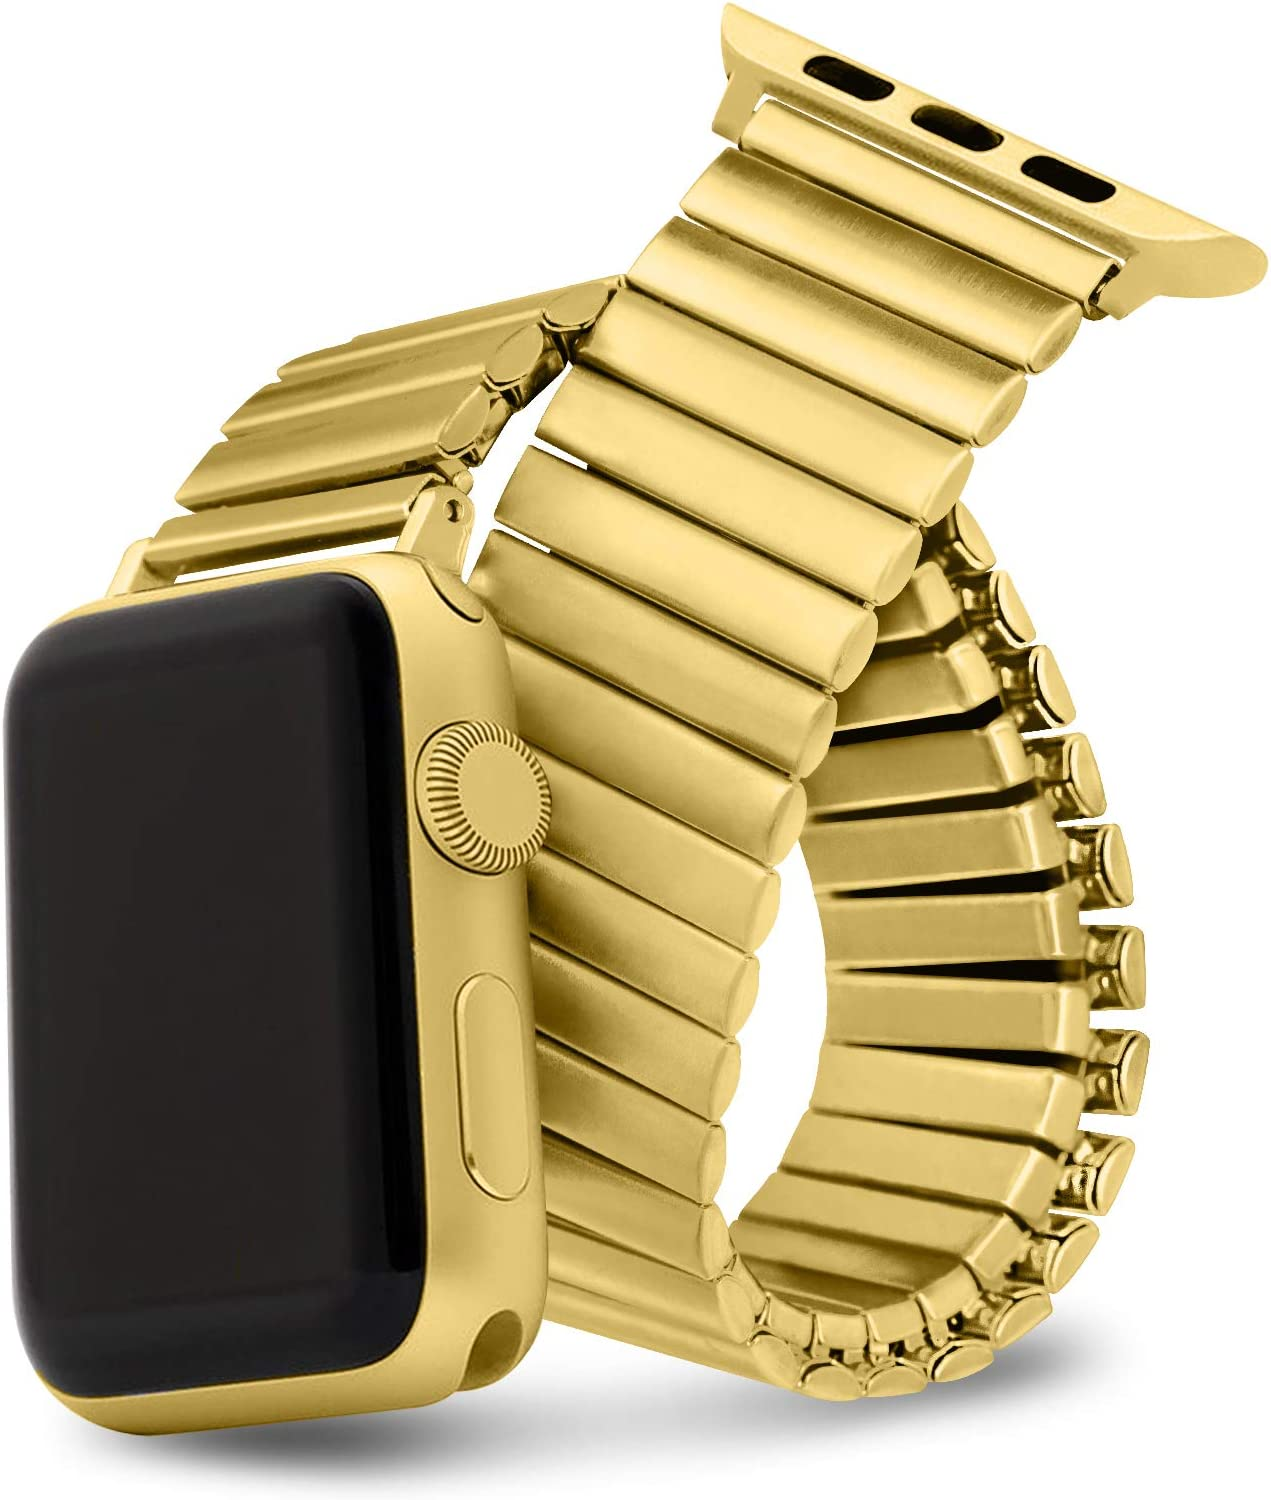 Watdpro Compatible with Apple Watch Band 42mm/44mm/38mm/40mm, Stretchables Stainless Steel Stretch Watch Band, Metal Expansion Apple Watch Band Compatible with iWatch Series 6/5/4/3/2/1/SE